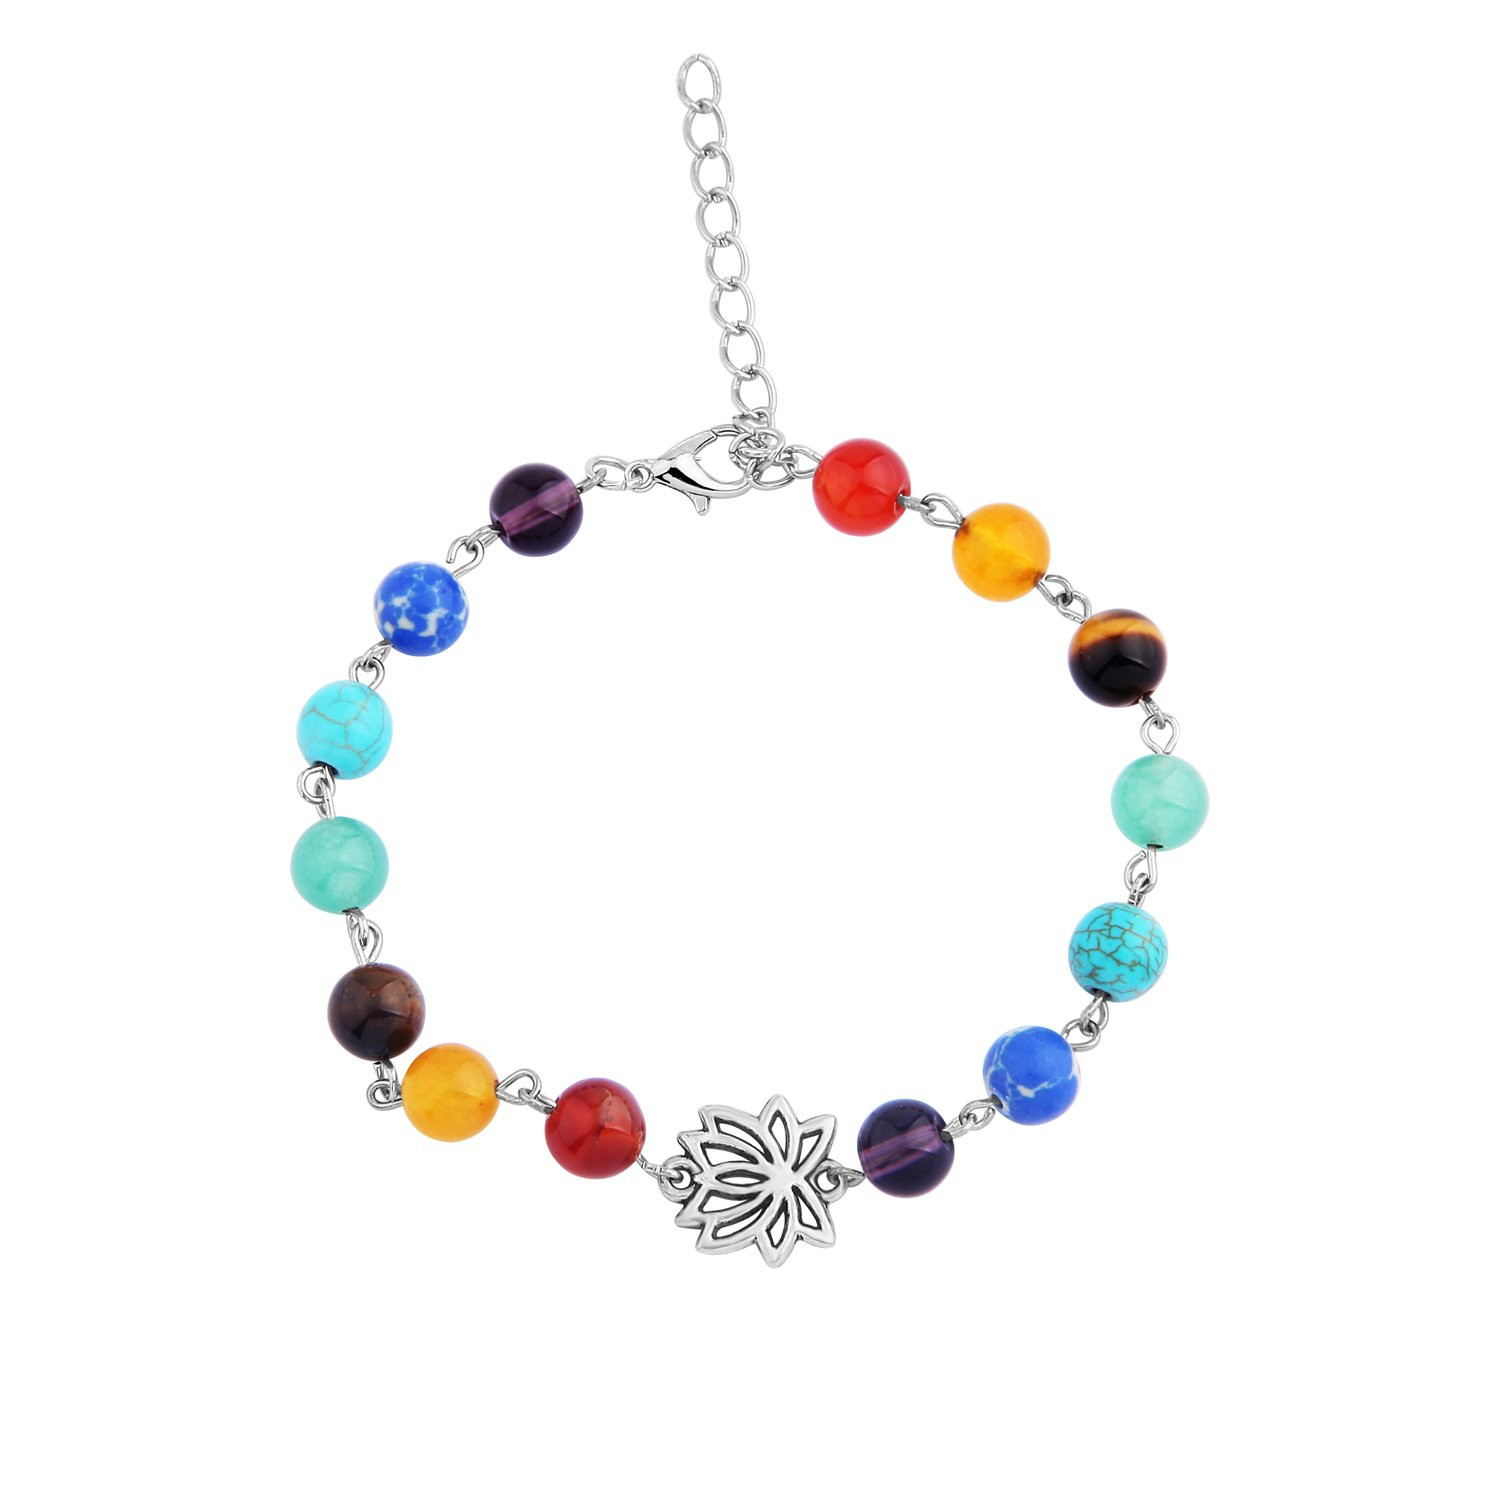 WUSUANED Yoga Jewelry 7 Chakra Healing Beads Lotus Bracelet Anklet Meditation Gift for Women Girls